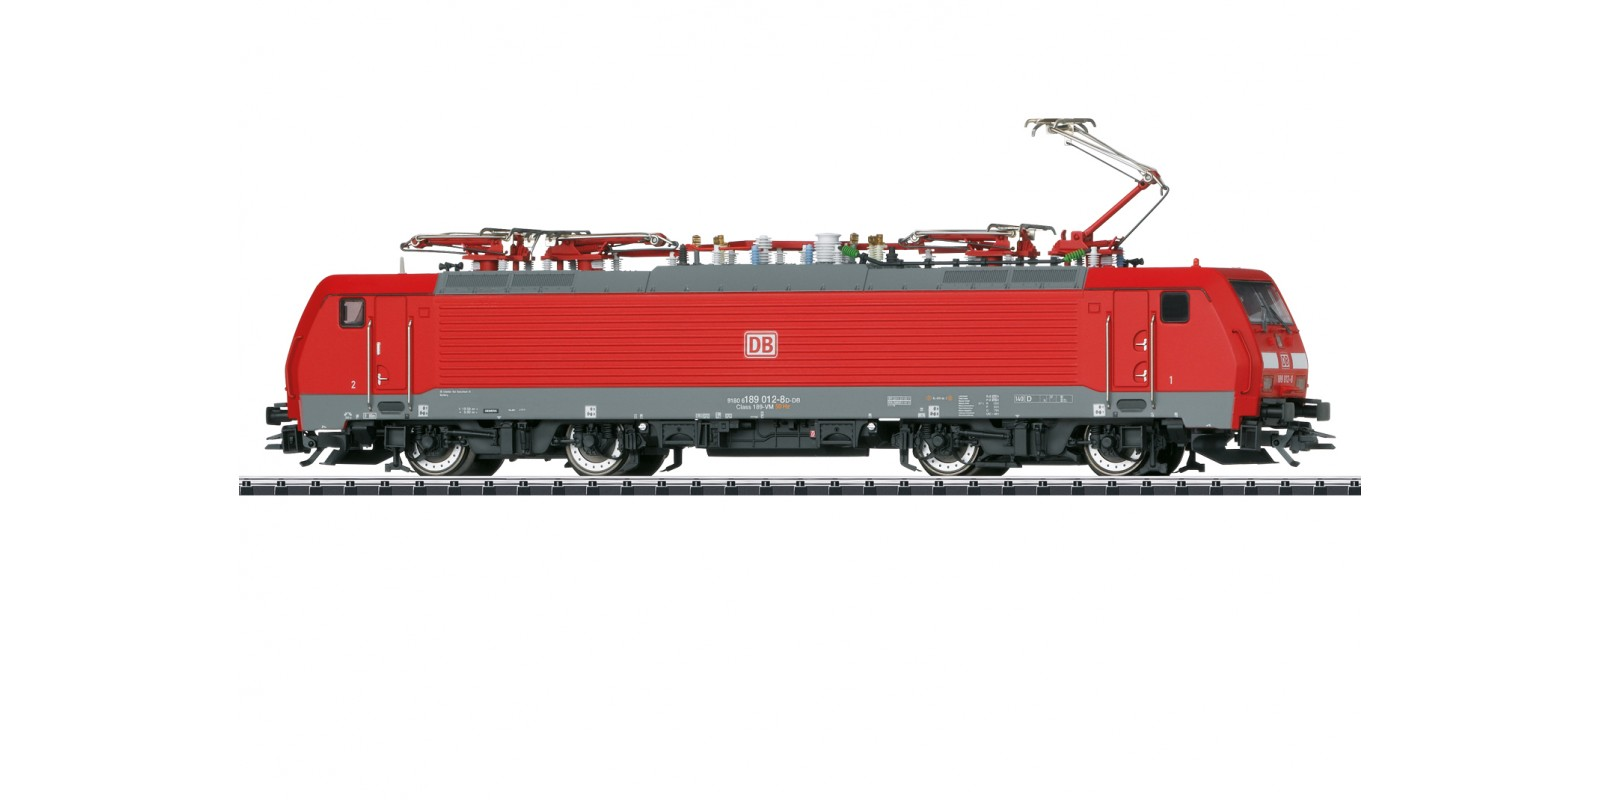 T22800 Class 189 Electric Locomotive